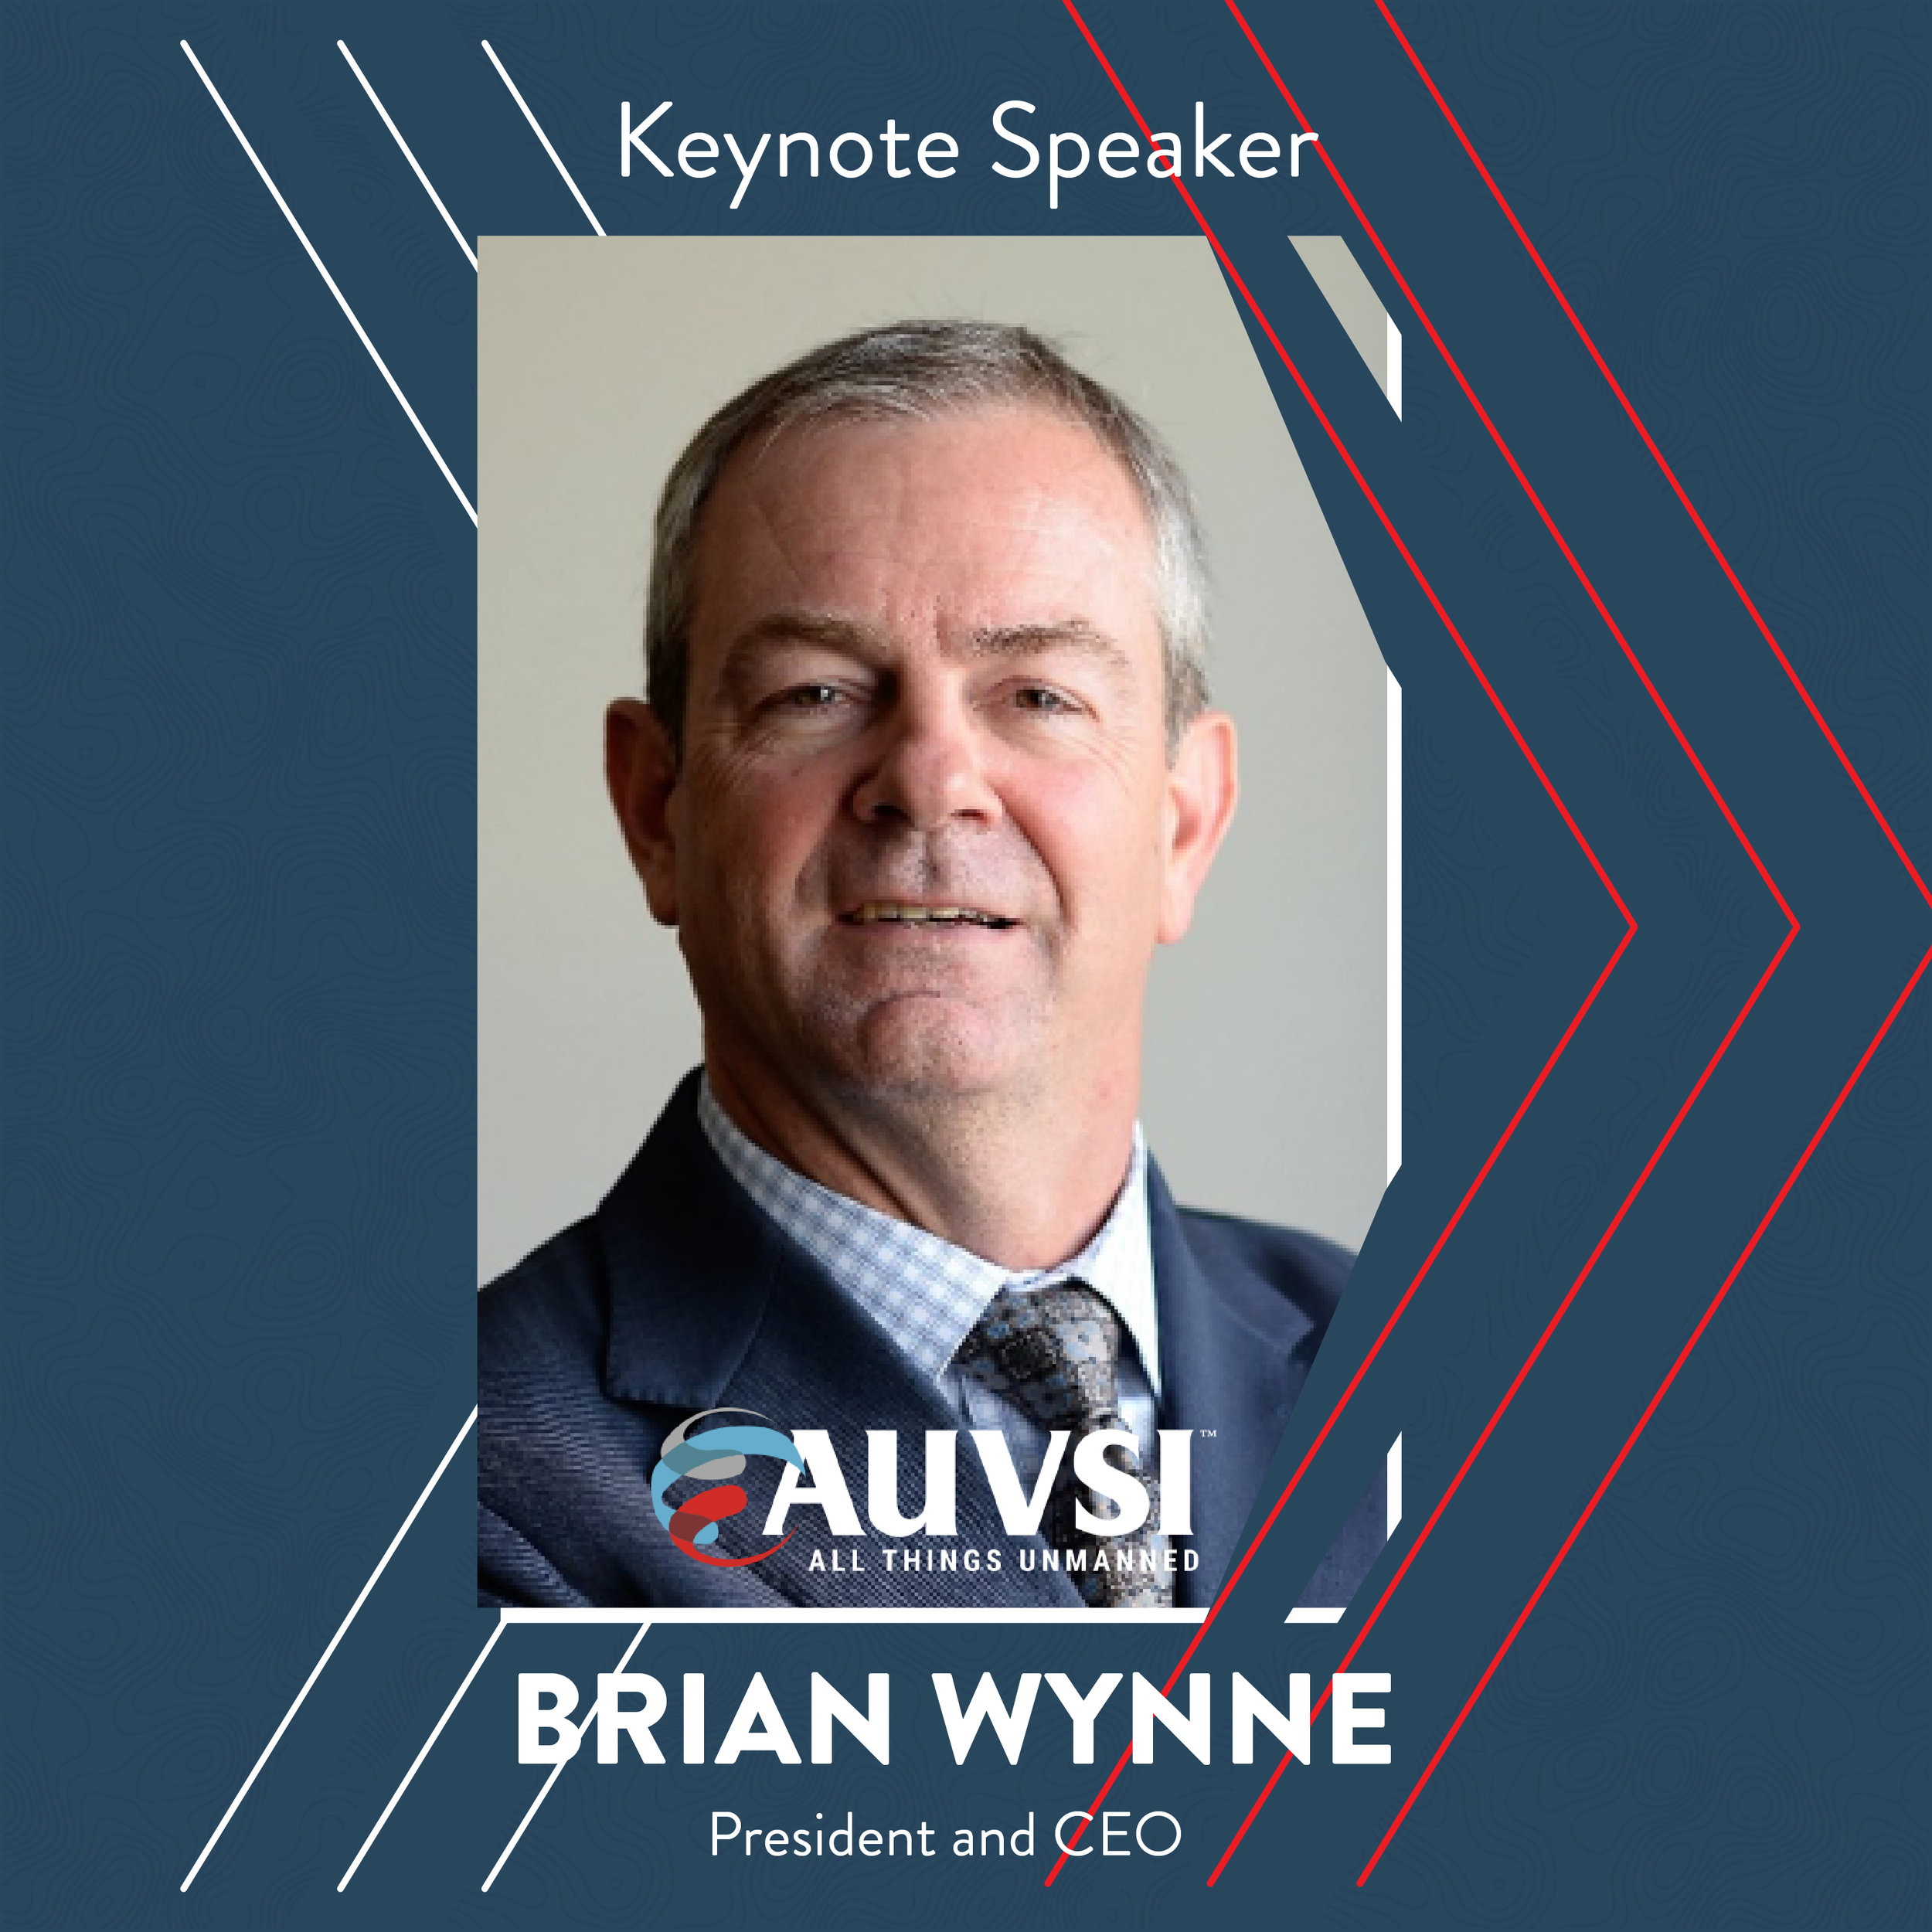 - Brian Wynne is president and CEO of the Association for Unmanned Vehicle Systems International (AUVSI), the world's largest nonprofit organization dedicated to the advancement of unmanned systems and robotics. AUVSI represents corporations and professionals from more than 60 countries involved in business and government and who work in the defense, civil, and commercial markets.